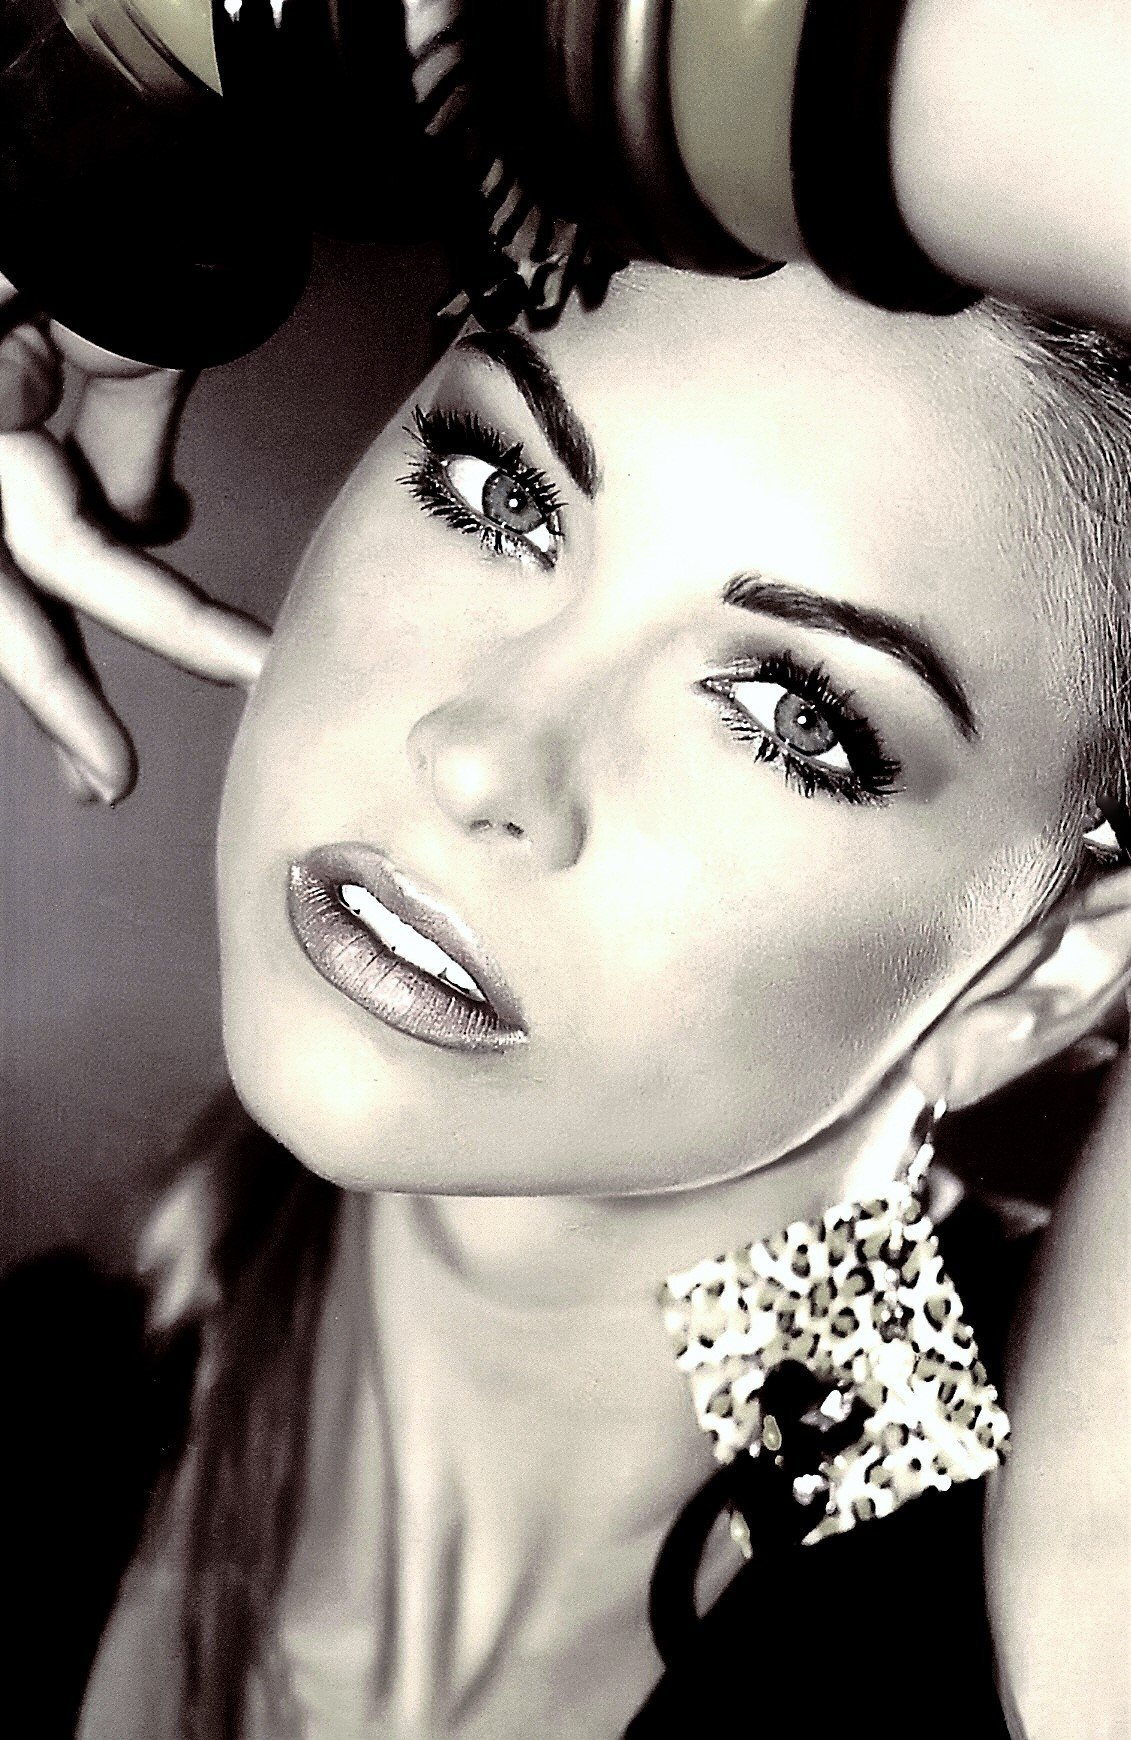 MISS SC-USA -  COURTNEY TURNER  She placed top 8 at MISS USA.